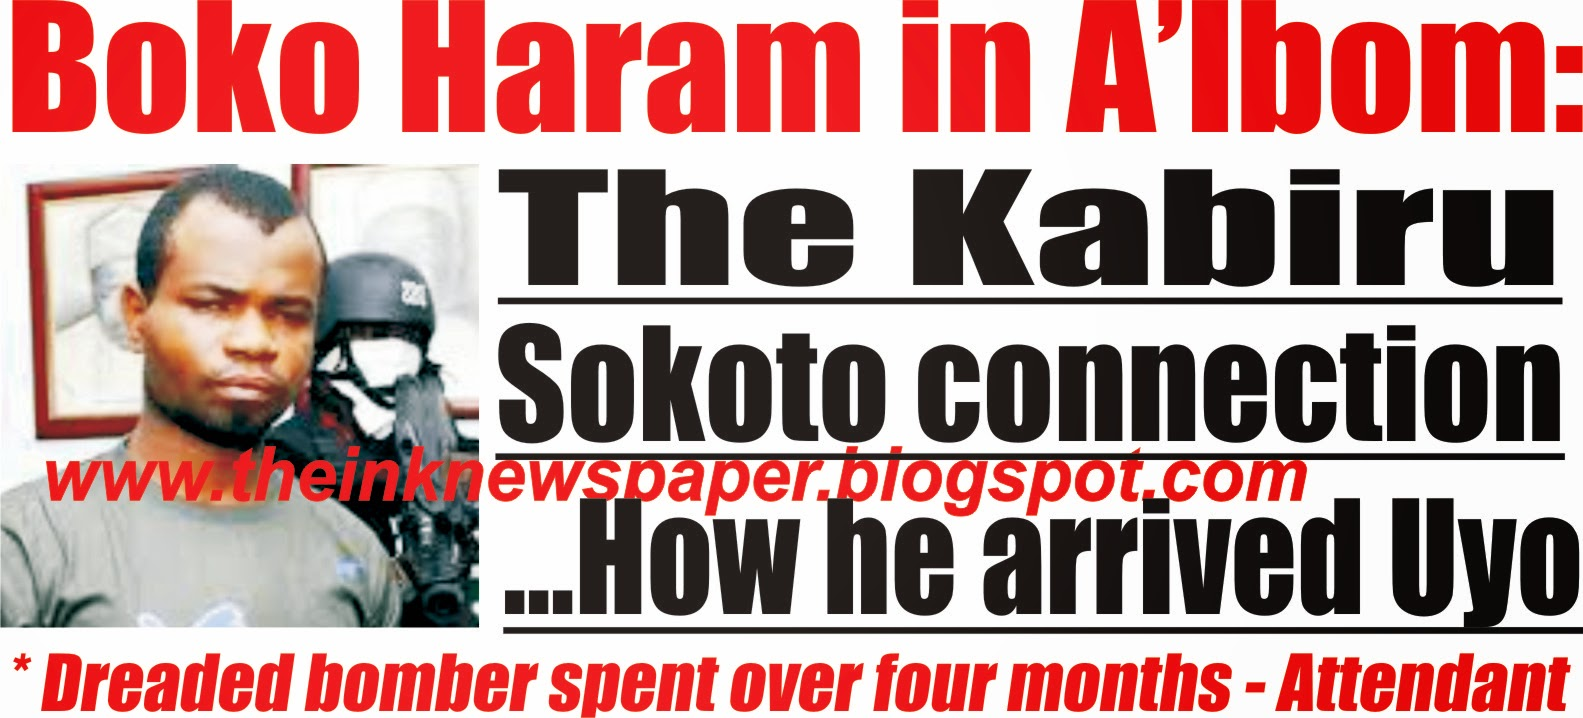 Boko Haram in Akwa Ibom: The Kabiru Sokoto connection and his stay in the state